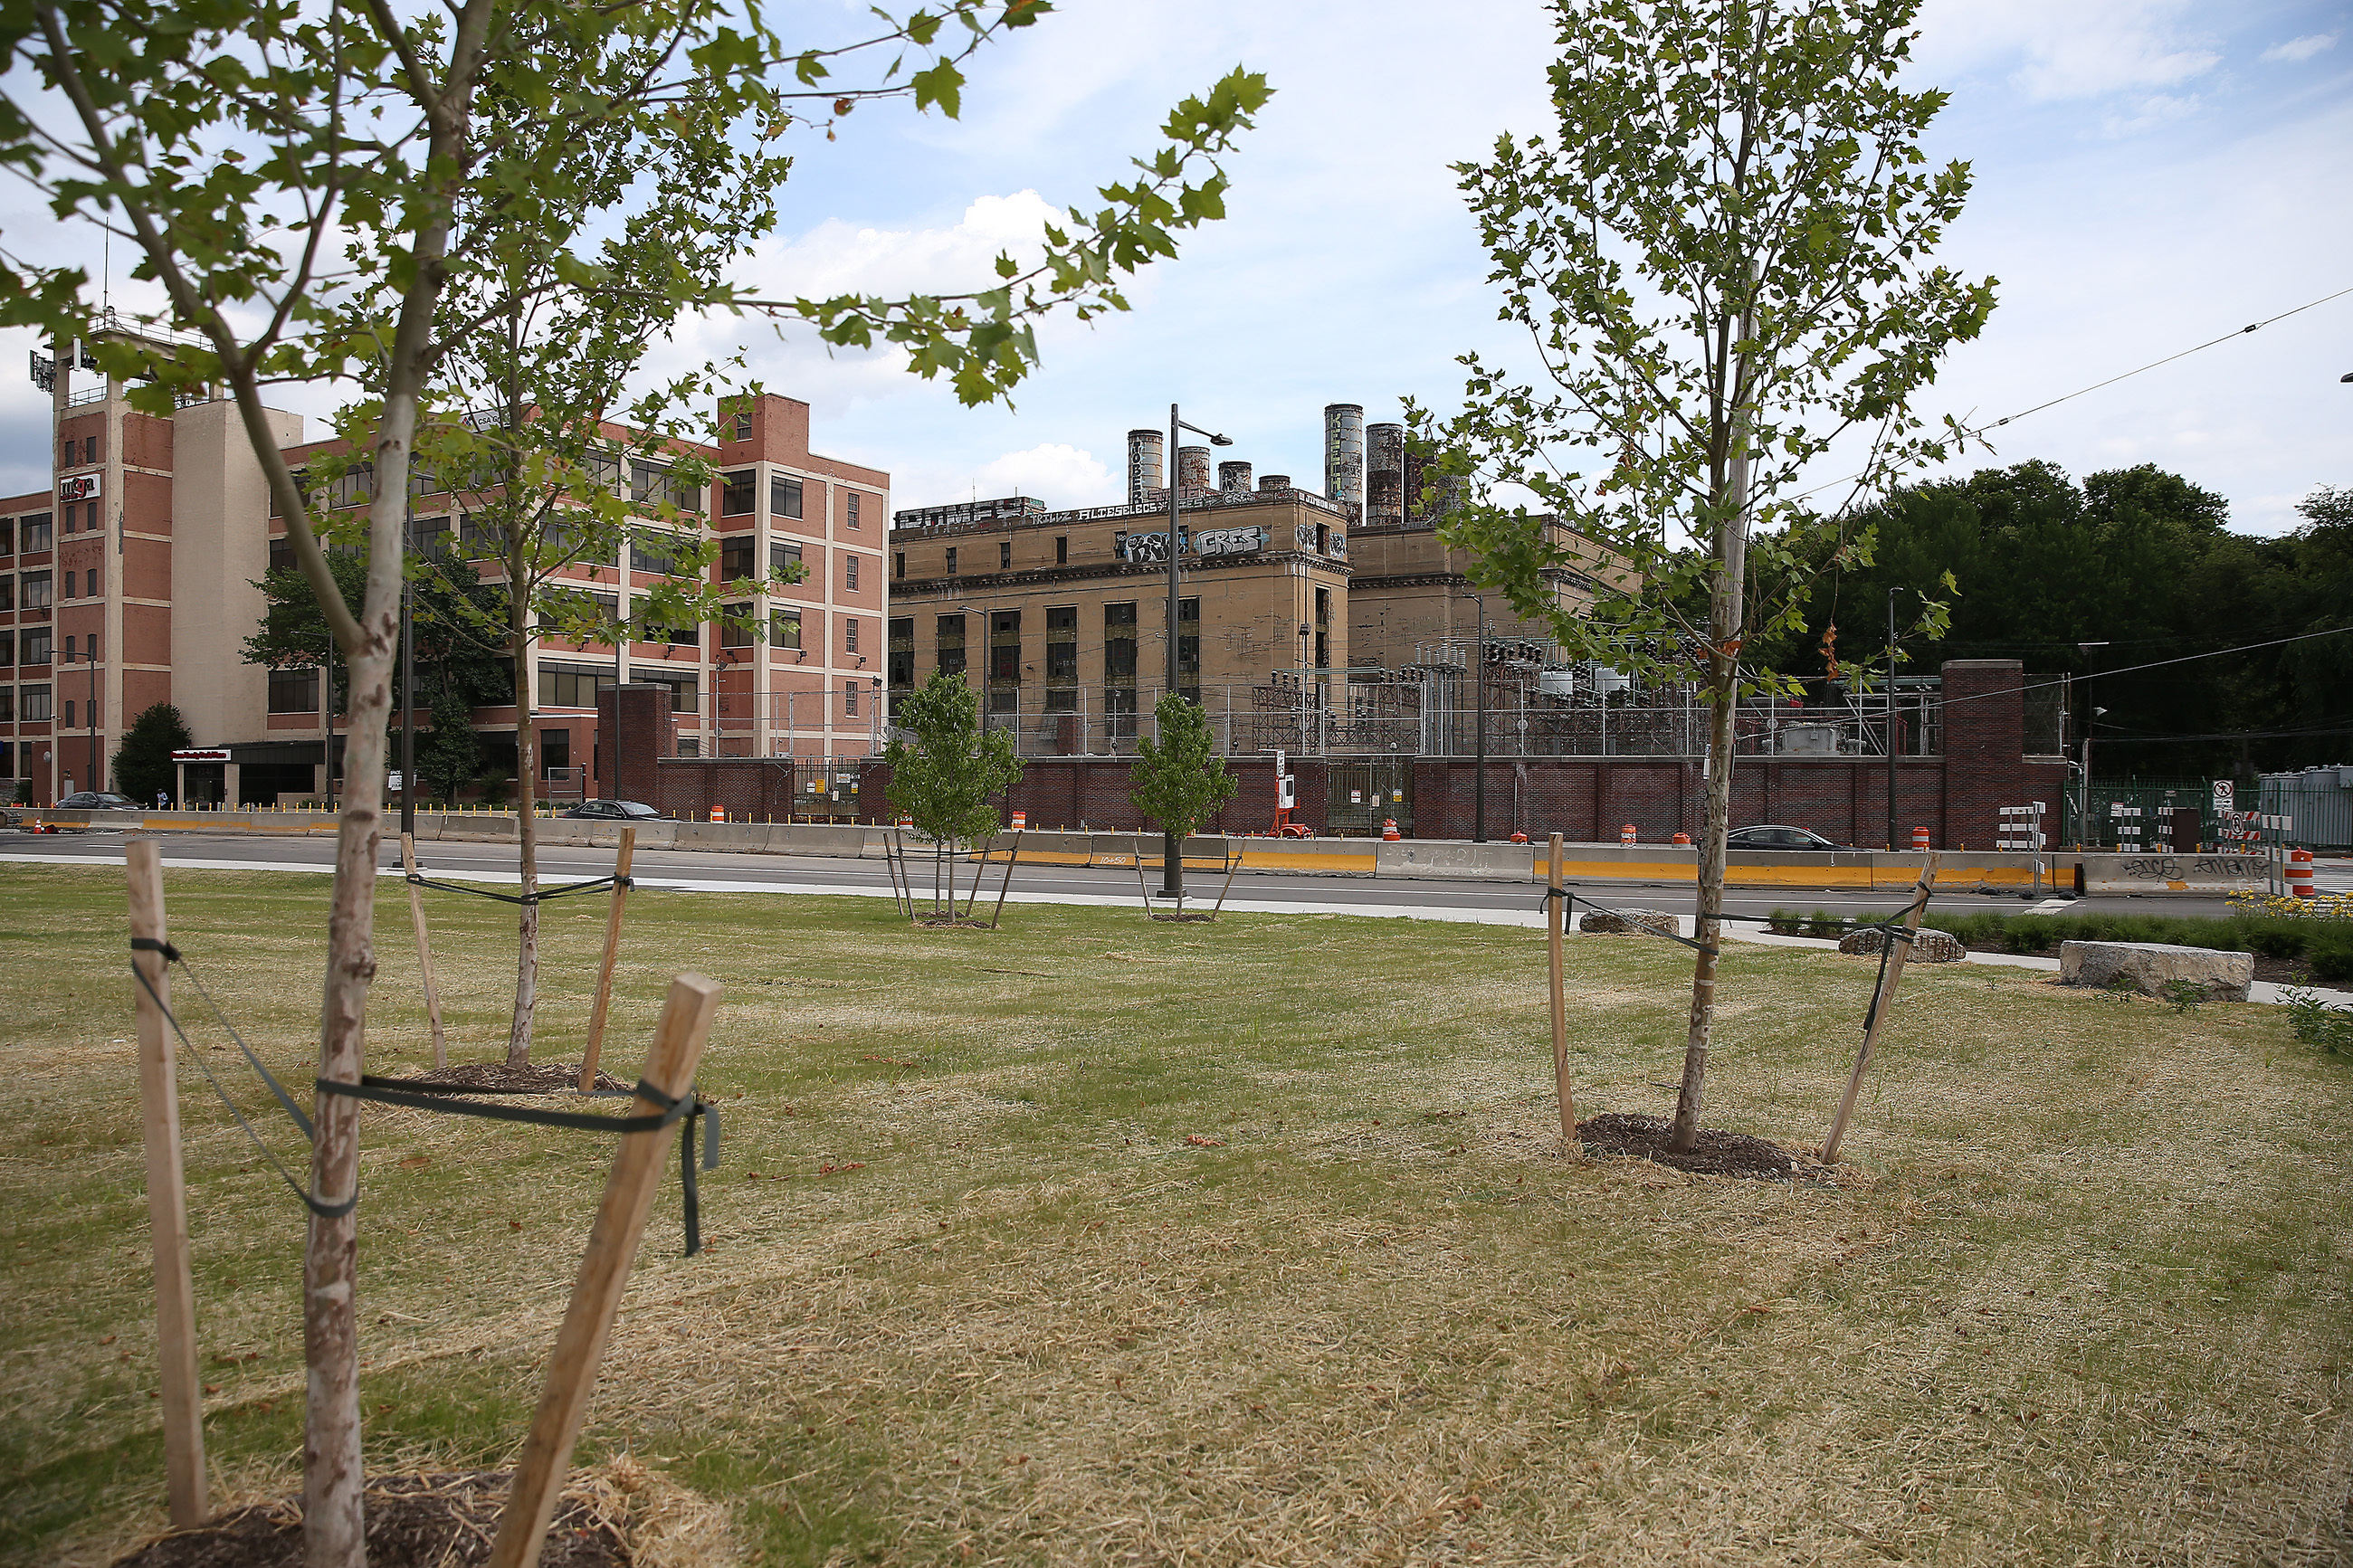 As part of the reconstruction of I-95, PennDOT has added new green space along Delaware Avenue, reducing the divide between Fishtown and the river. The former PECO station could become a wedding hall. DAVID MAIALETTI / Staff Photographer